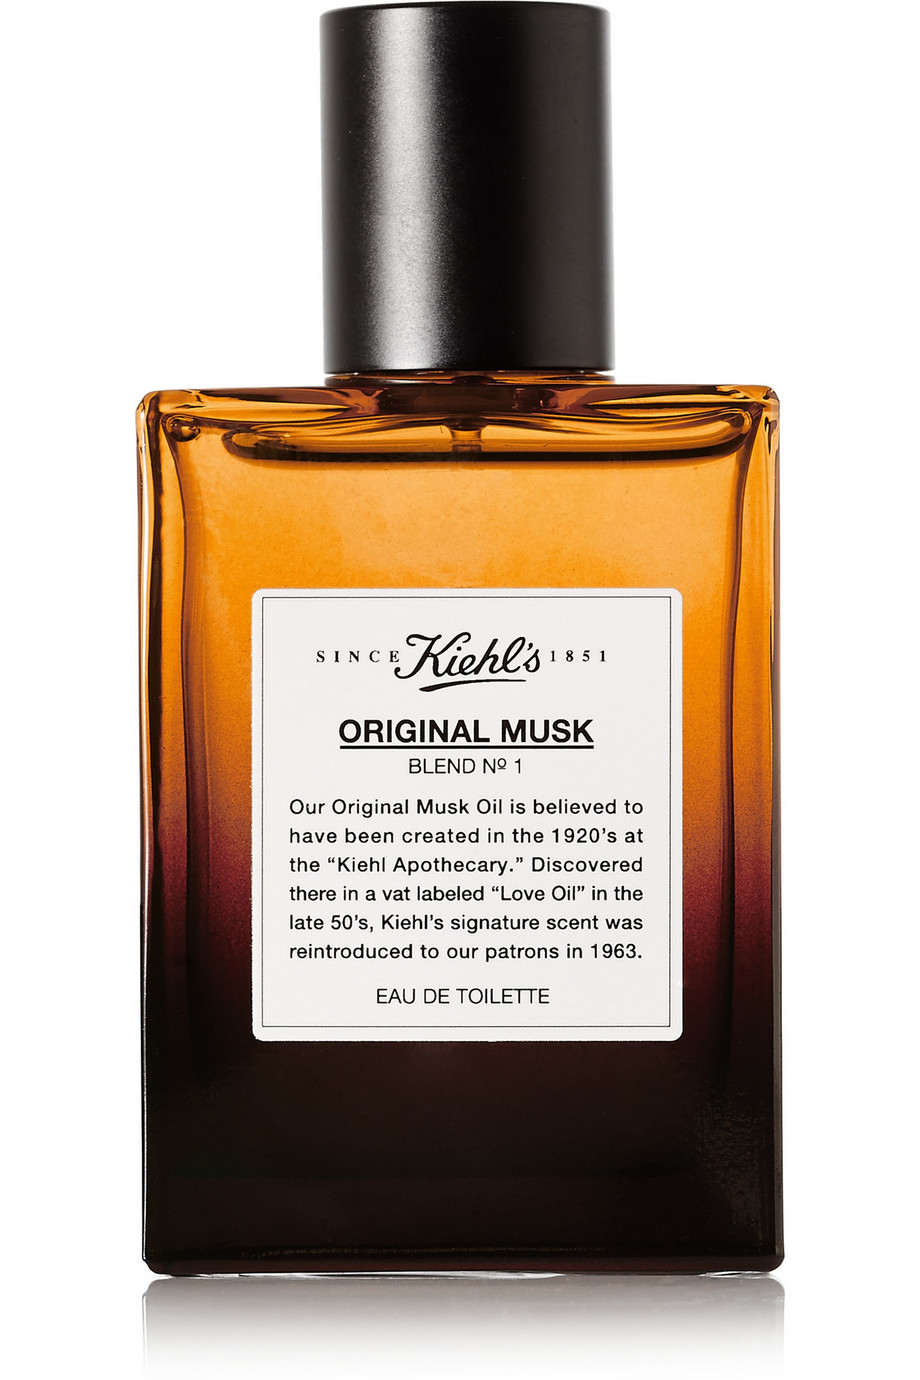 Original Musk Blend No. 1 Eau De Toilette, 50ml, by Kiehl's Since 1851